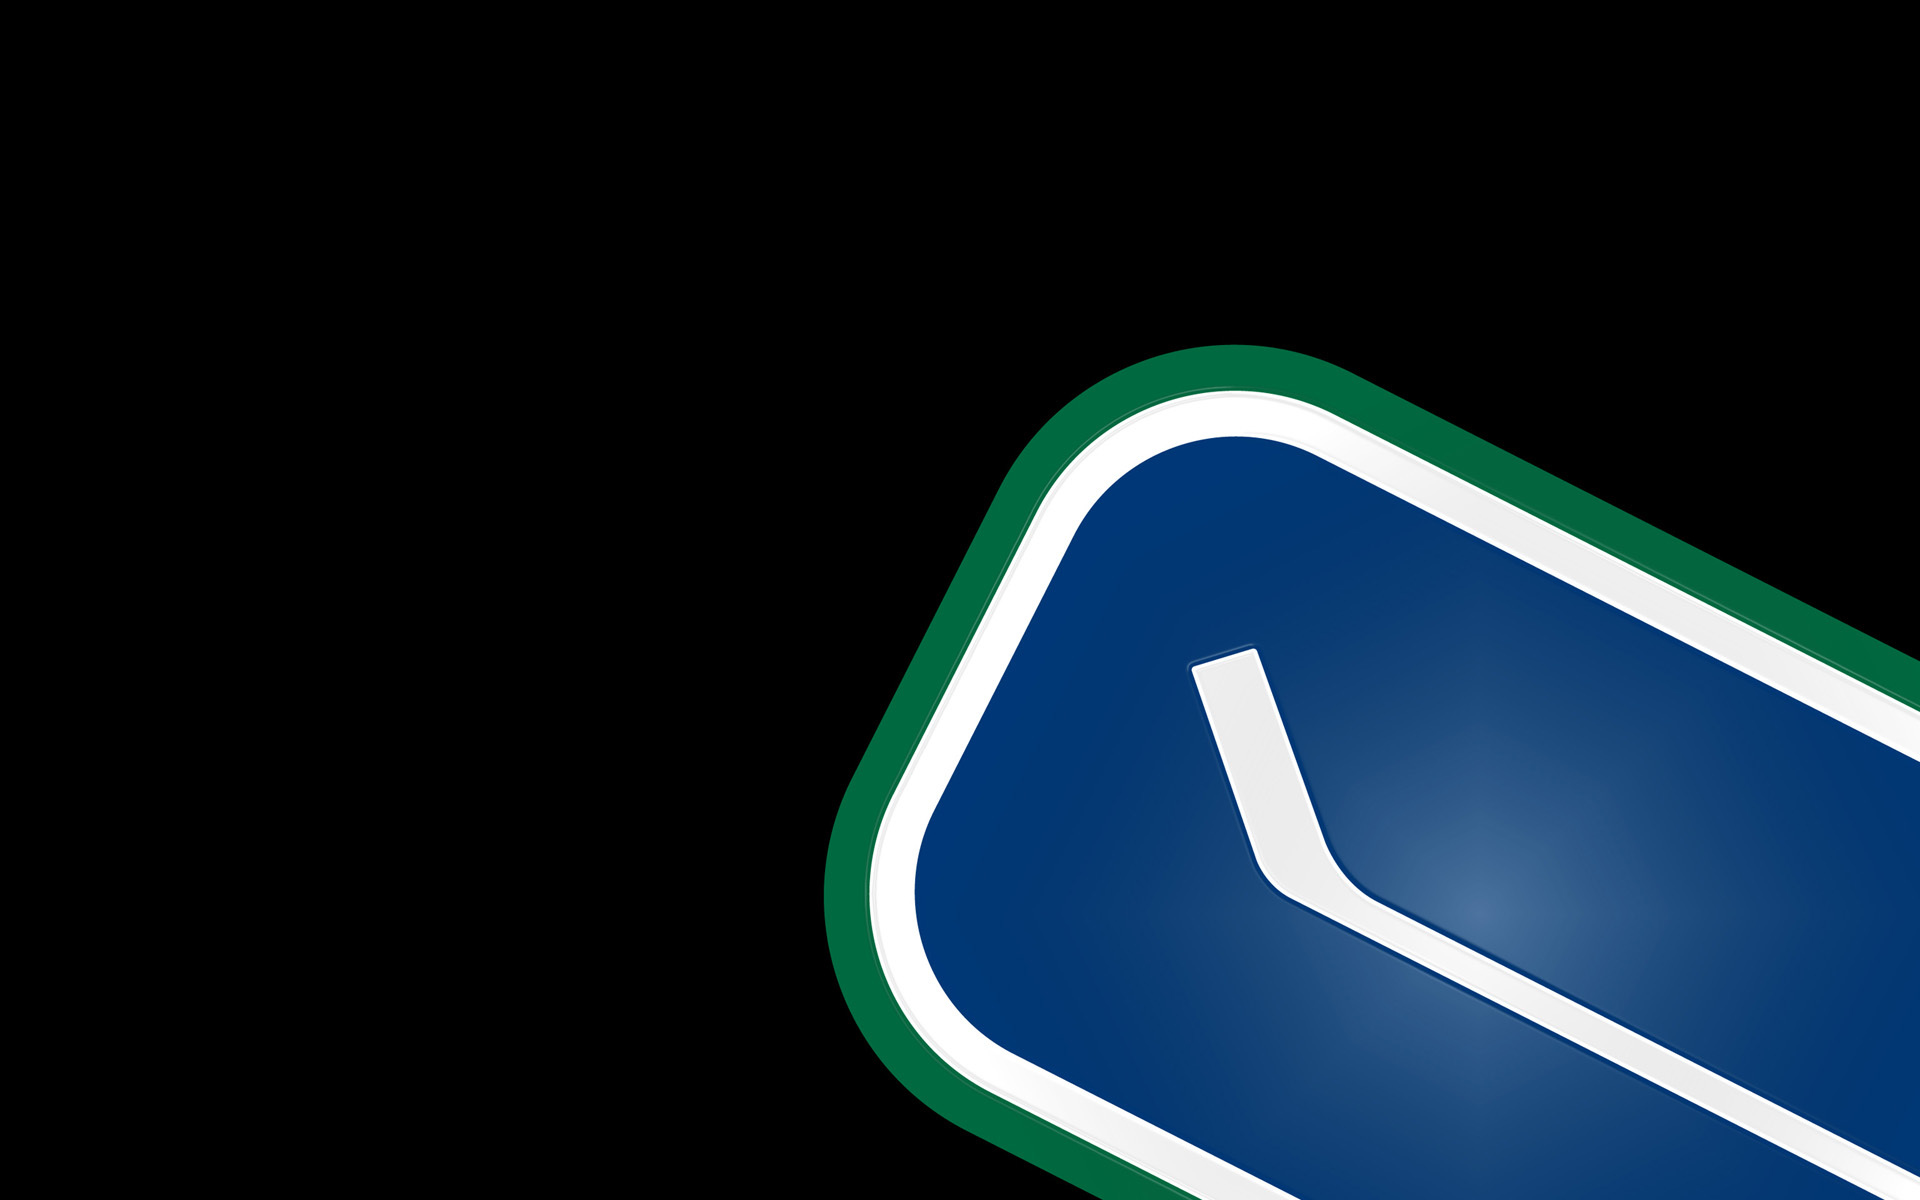 Vancouver Canucks Ipad wallpaper   576176 1920x1200